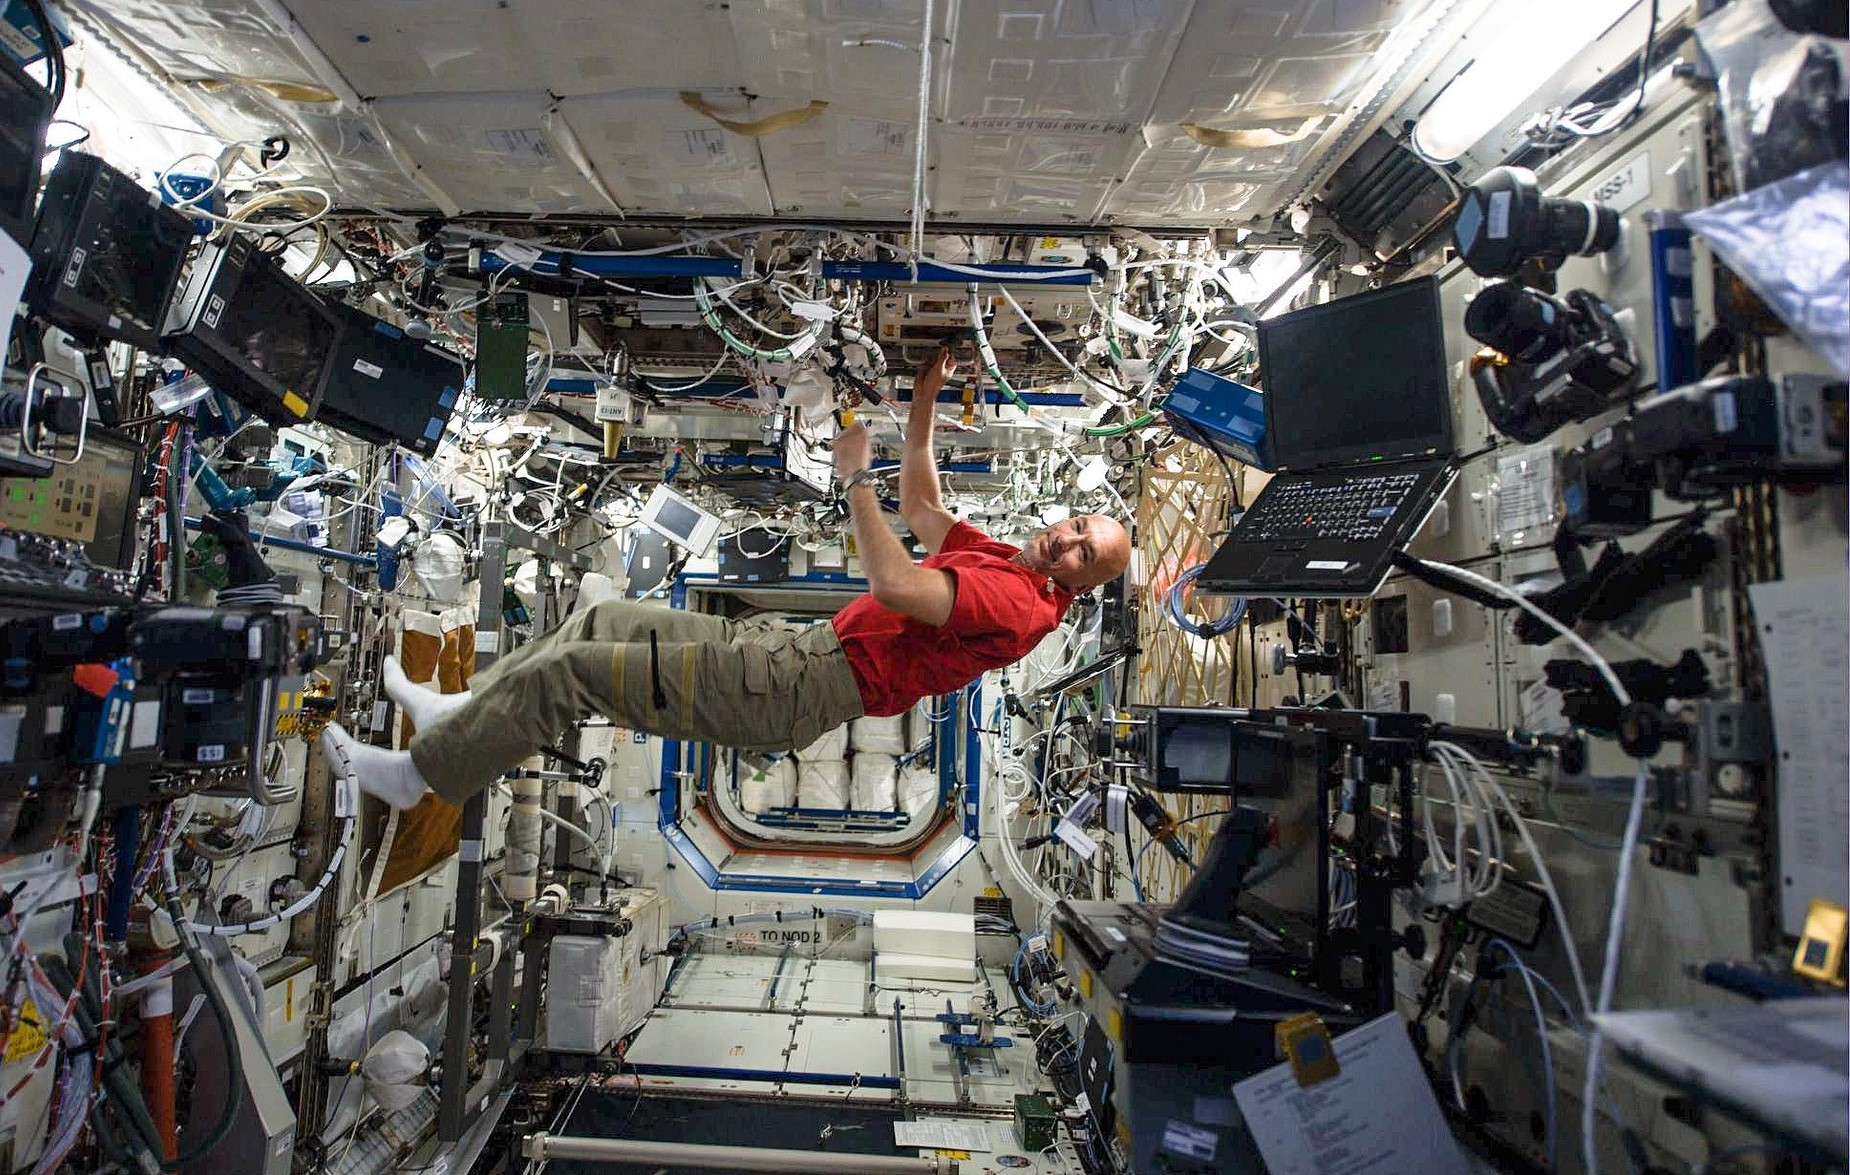 astronaut working in space - photo #8